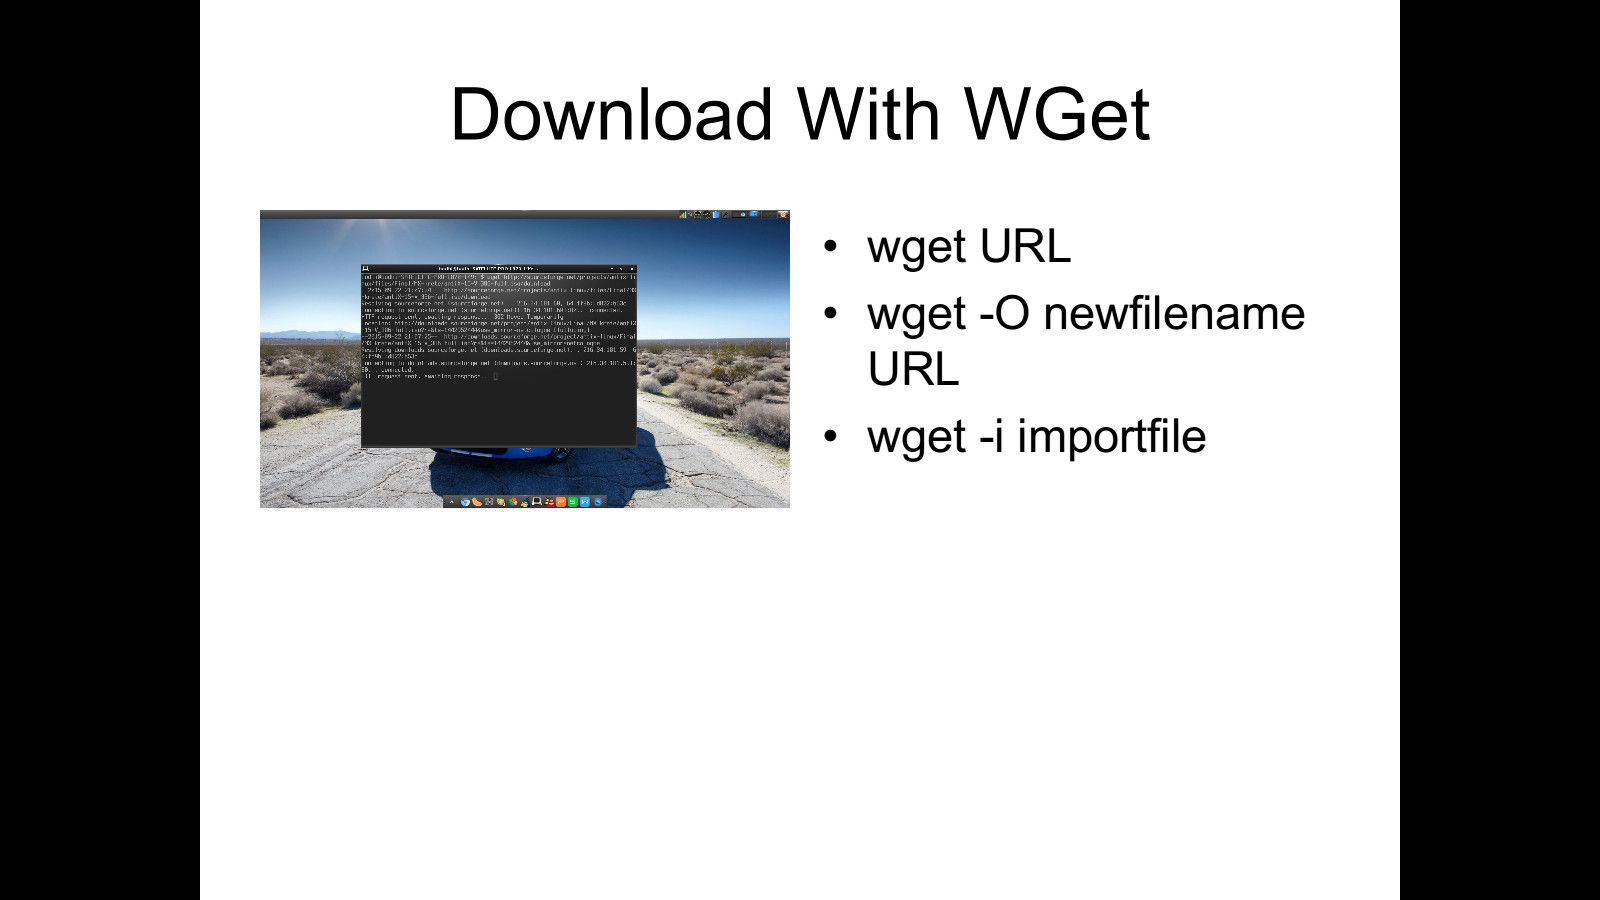 Download files from wget